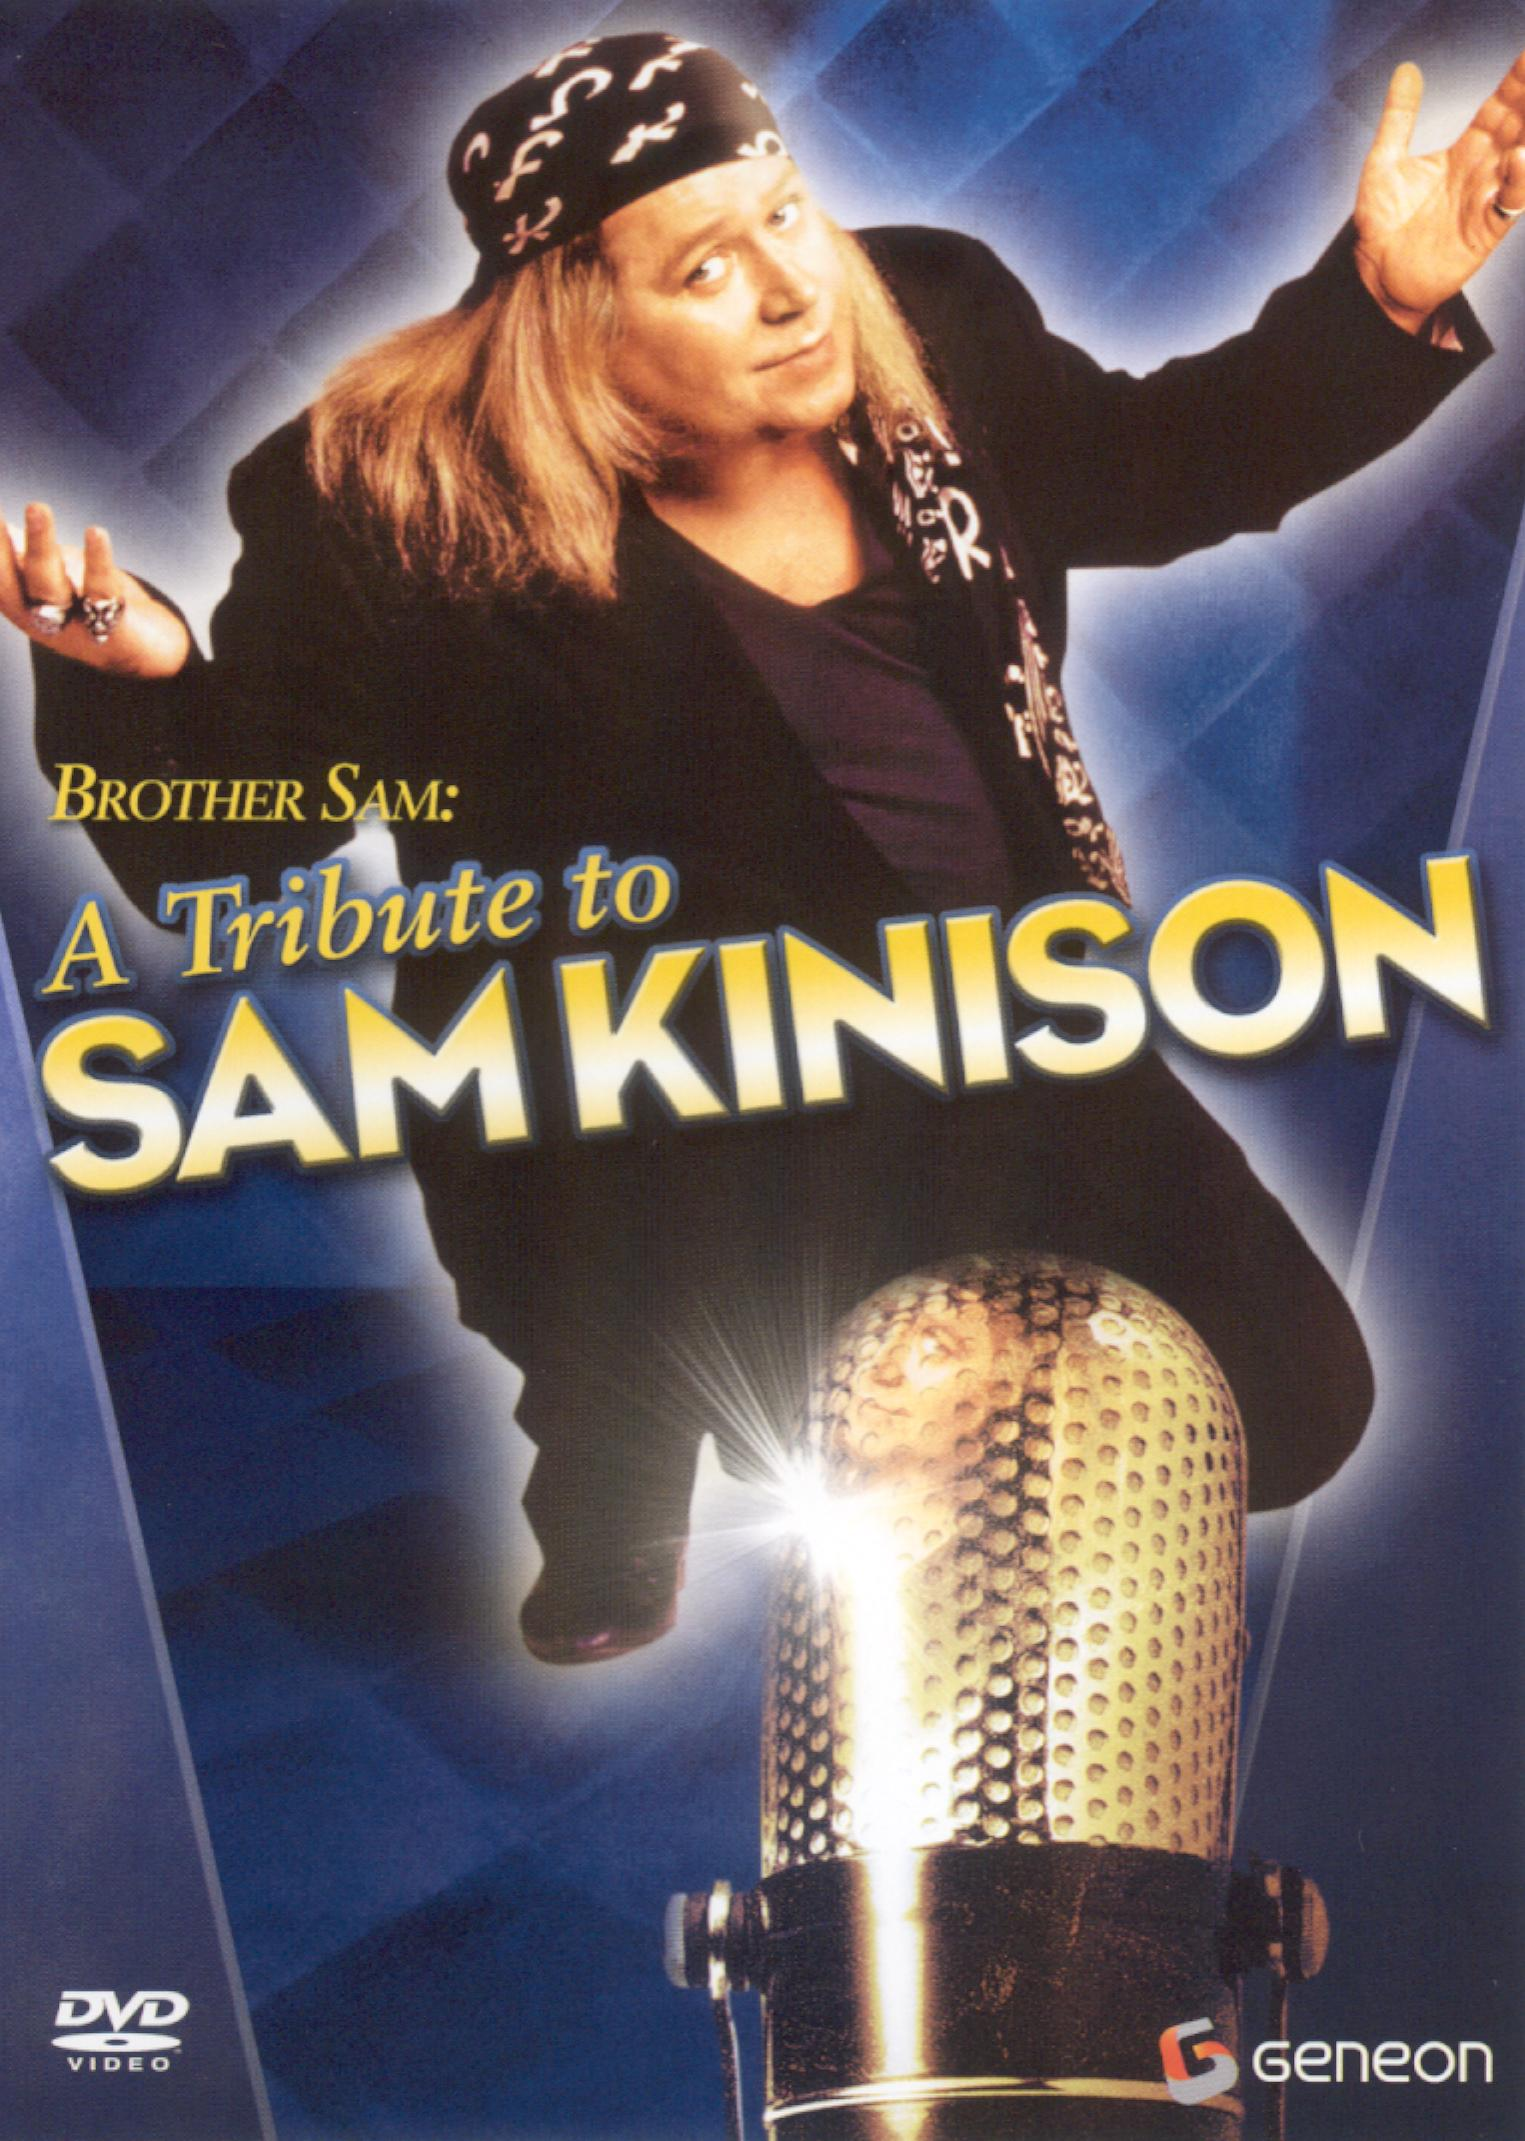 Brother Sam: A Tribute To Sam Kinison